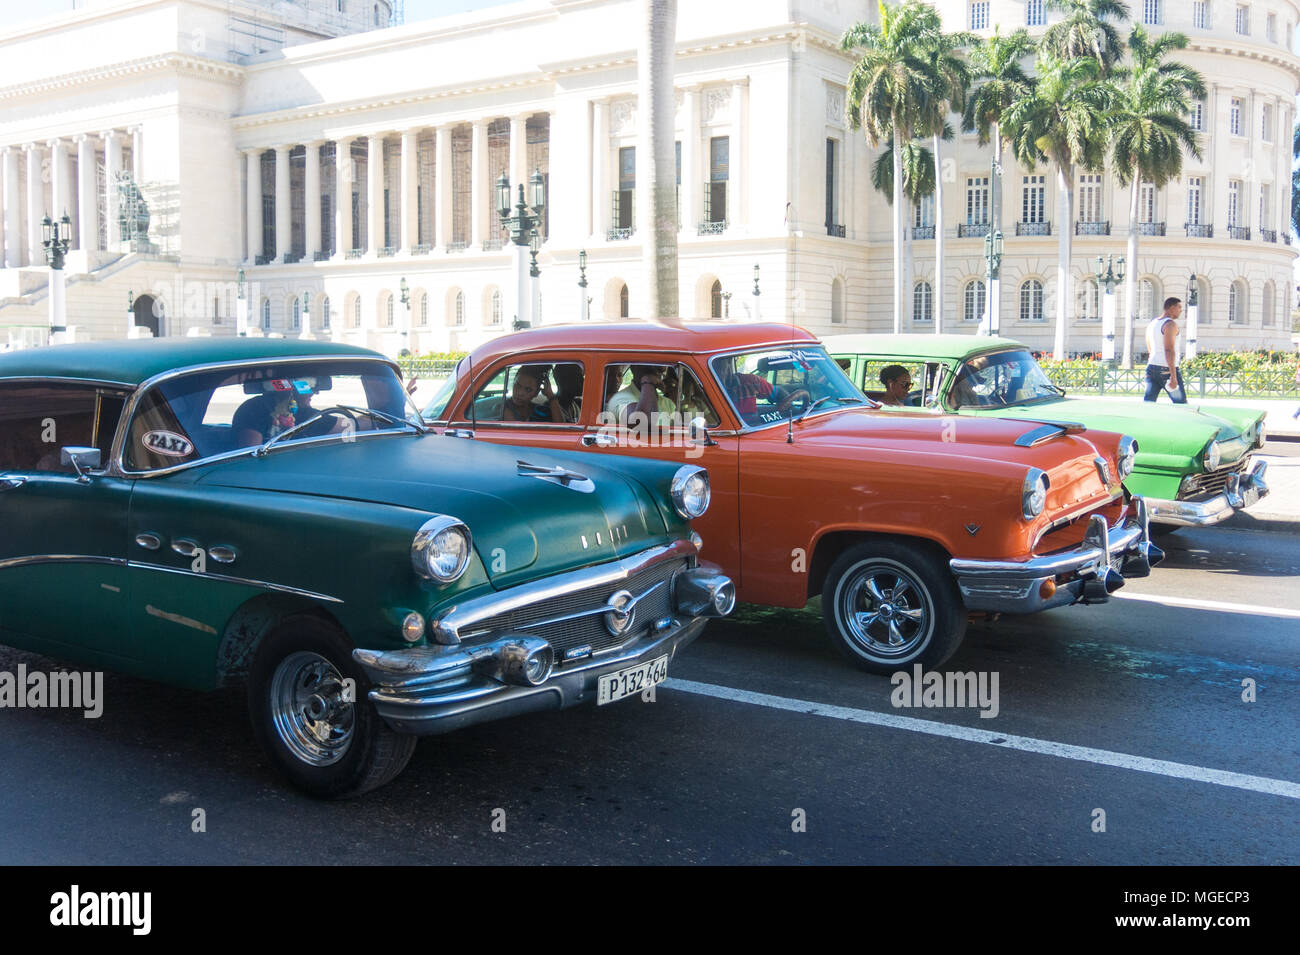 HAVANA, CUBA - JANUARY 16, 2017: A vintage car circulating in front ...